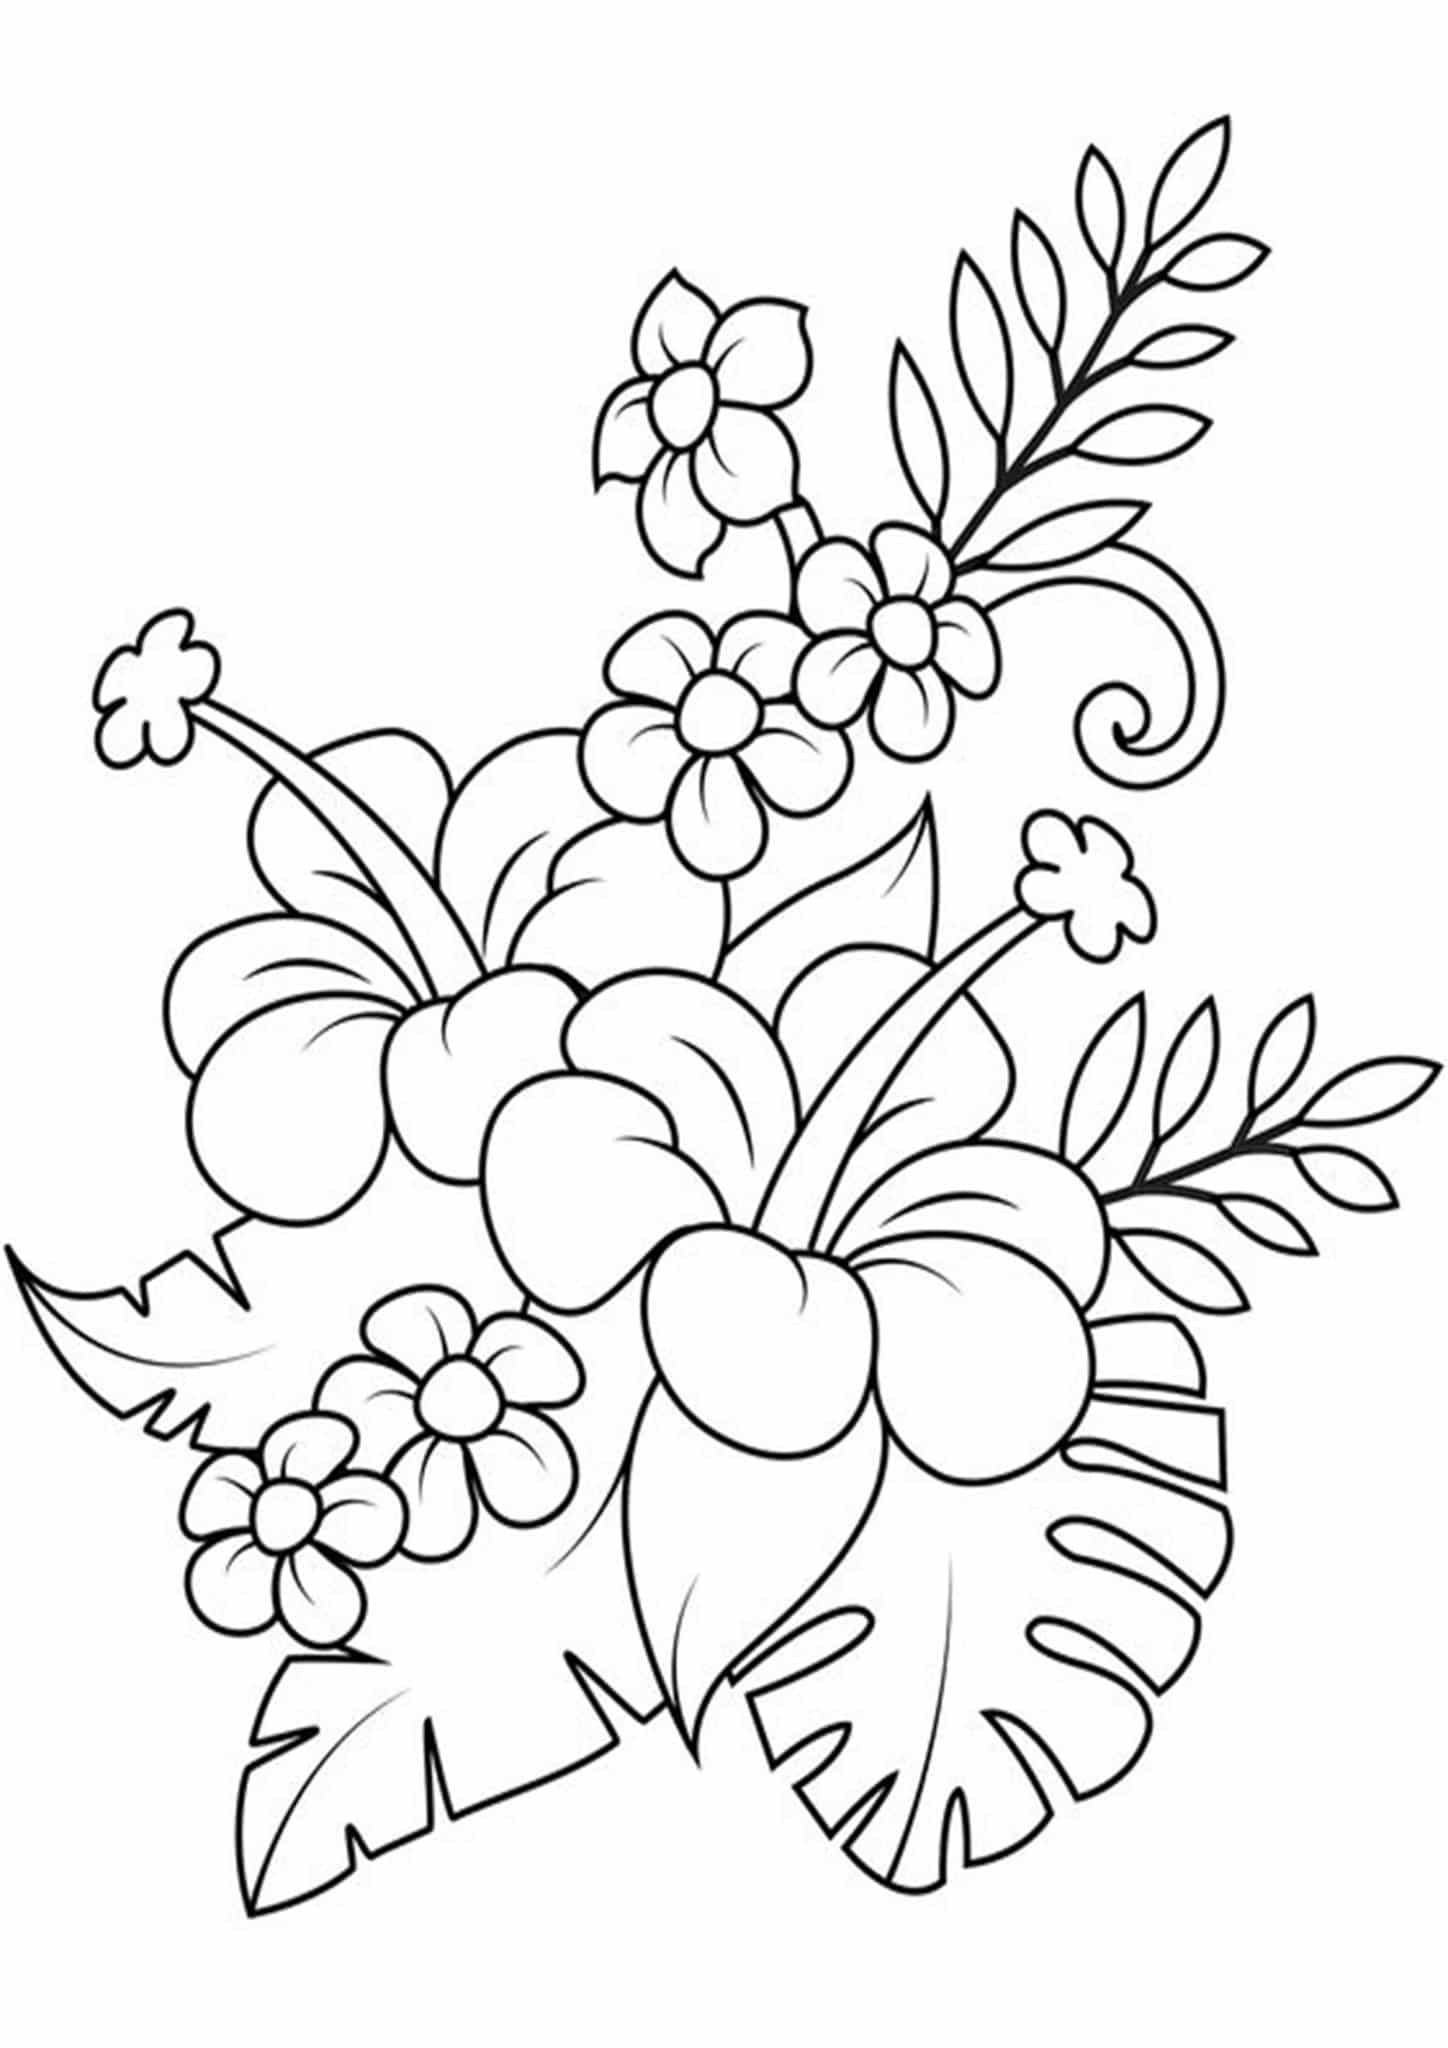 Free & Easy To Print Flower Coloring Pages  Flower pattern design